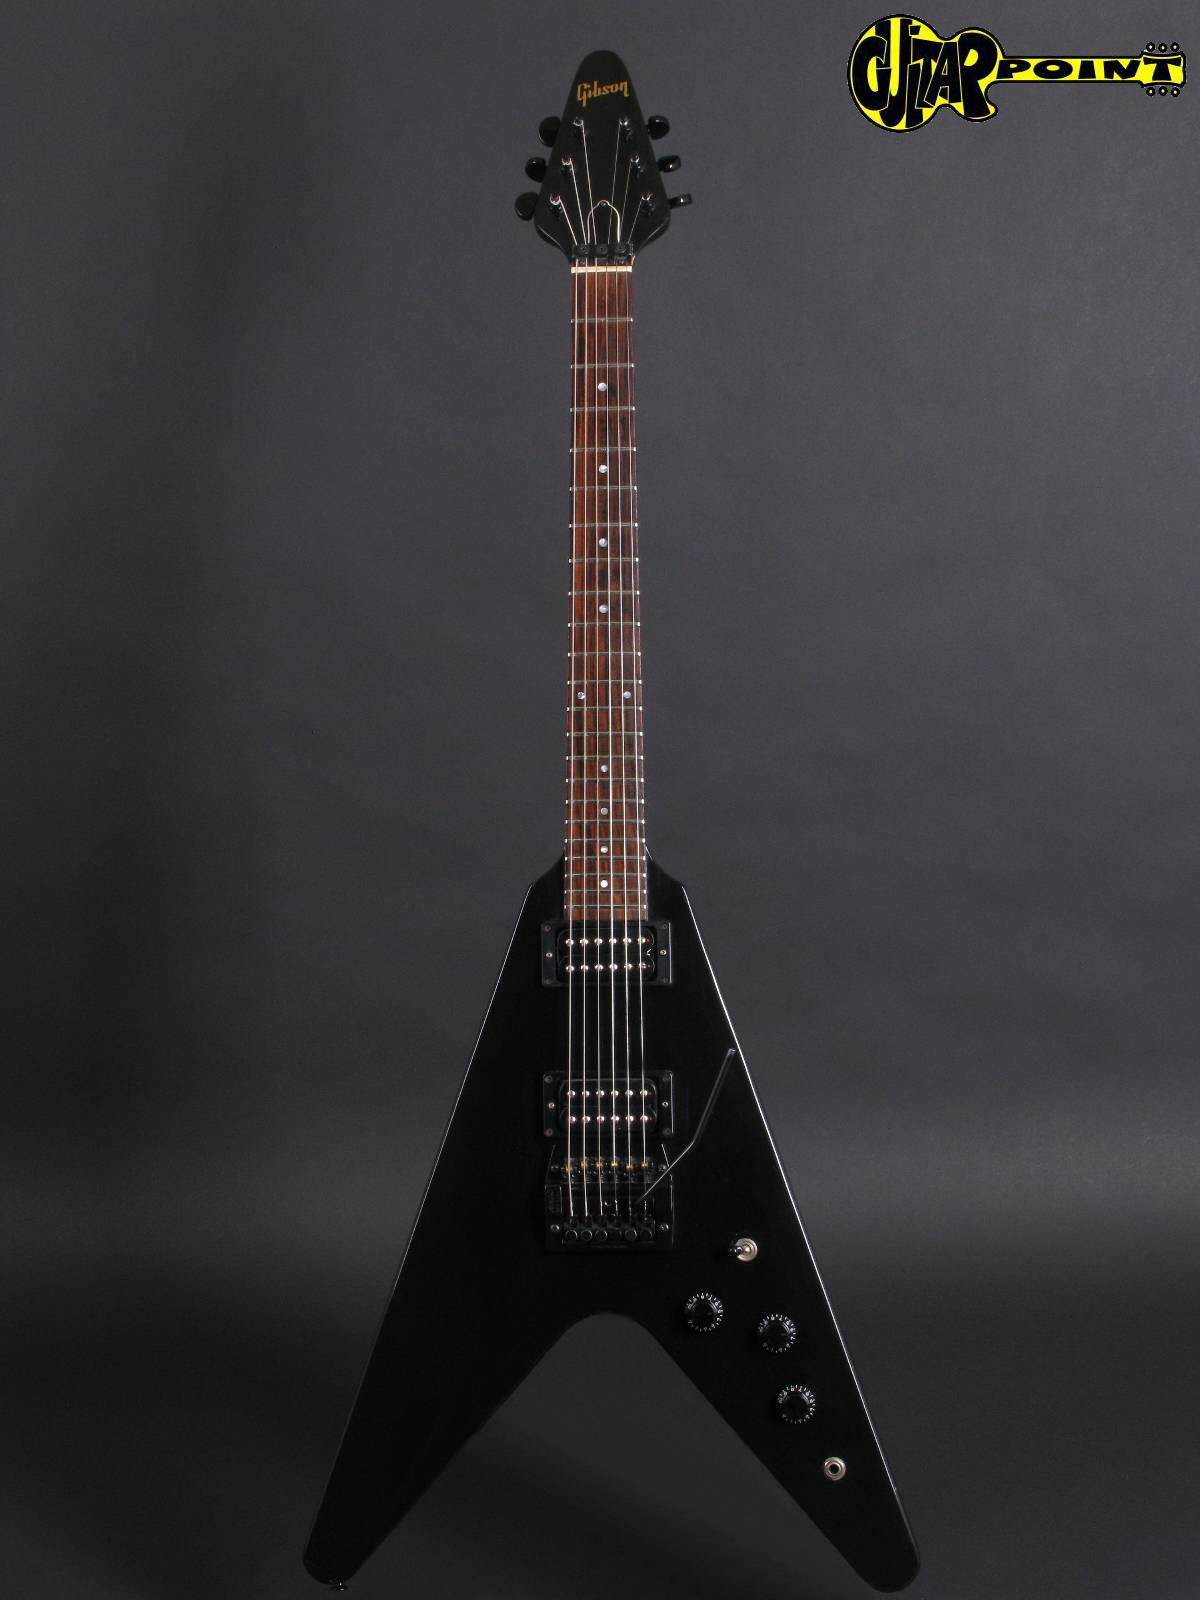 gibson flying v 1985 ebony black guitar for sale guitarpoint. Black Bedroom Furniture Sets. Home Design Ideas